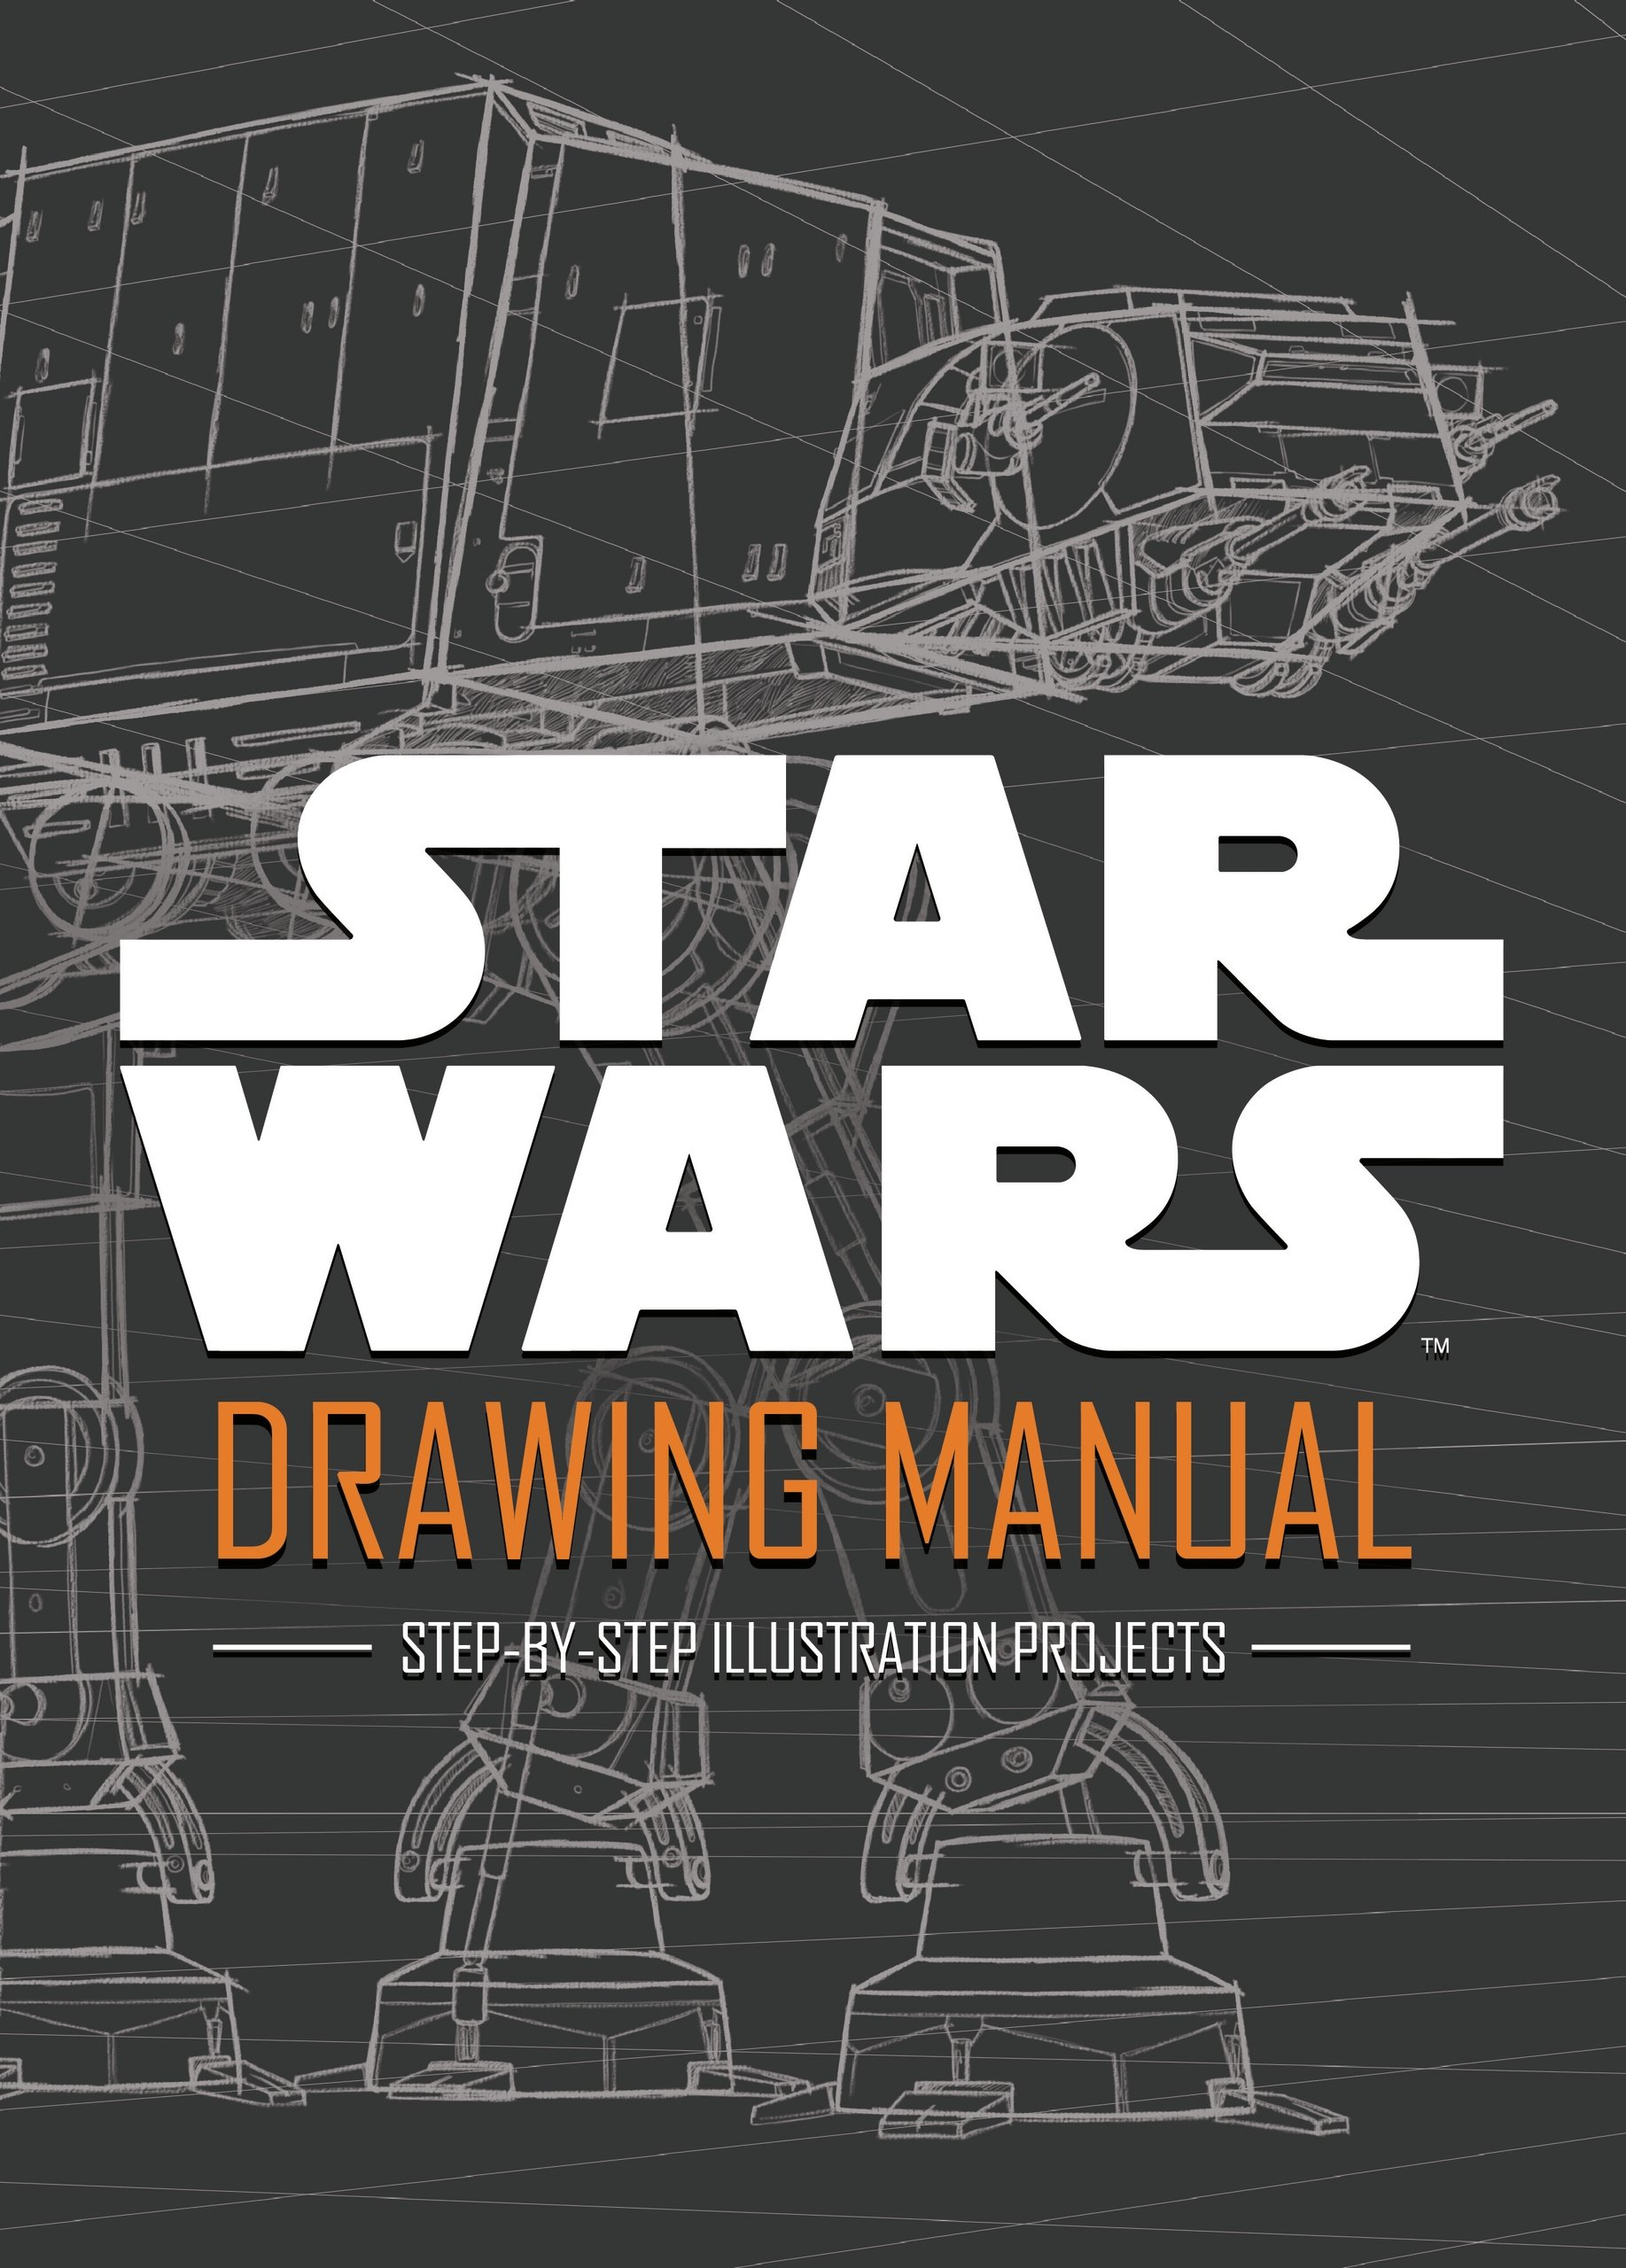 Star Wars Drawing Manual Paperback – November 3, 2016